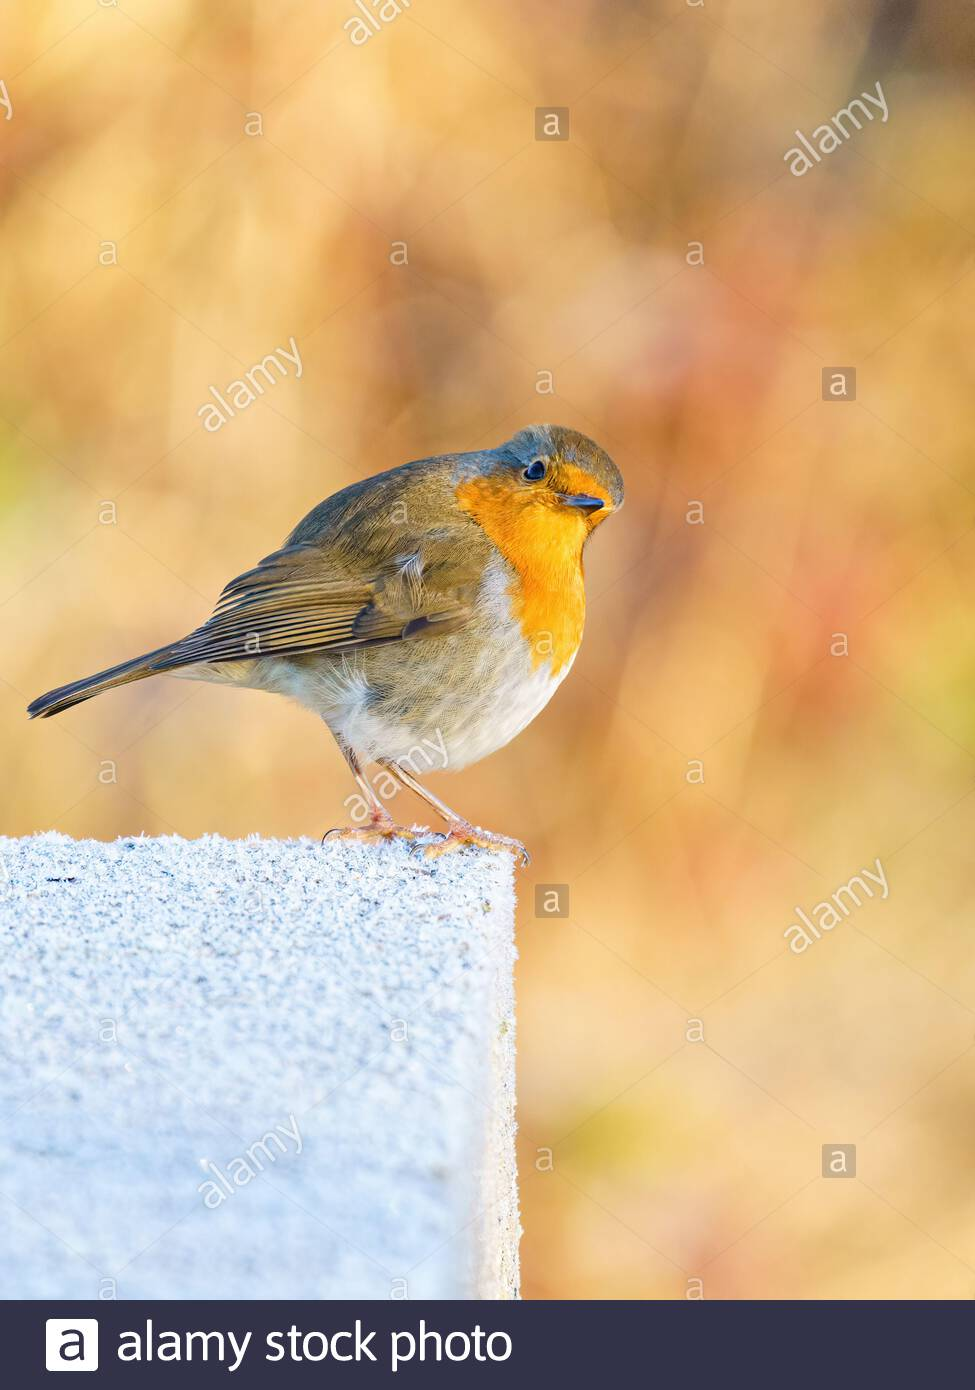 European Robin (Erithacus rubecula) perched on a frosty concrete block, looking quizical, taken in the UK Stock Photo